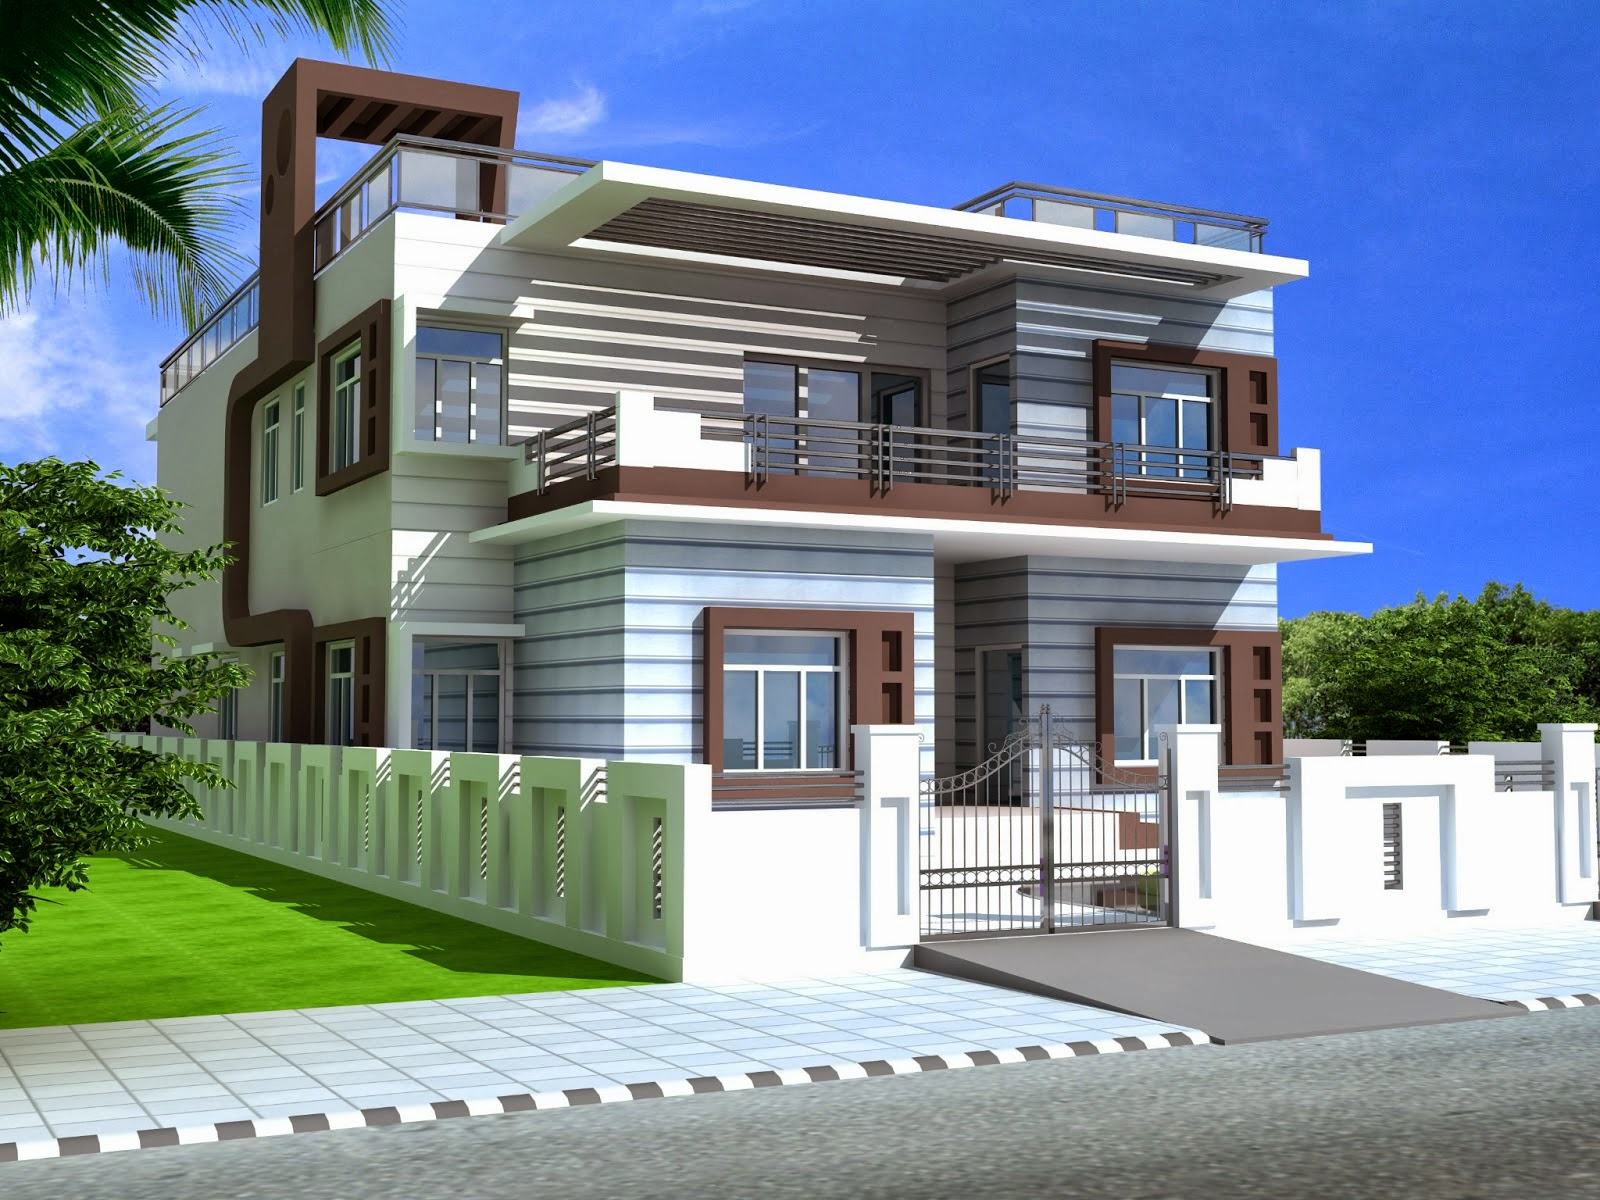 Foundation dezin decor duplex homes 3ds max work for Building plans for duplex homes